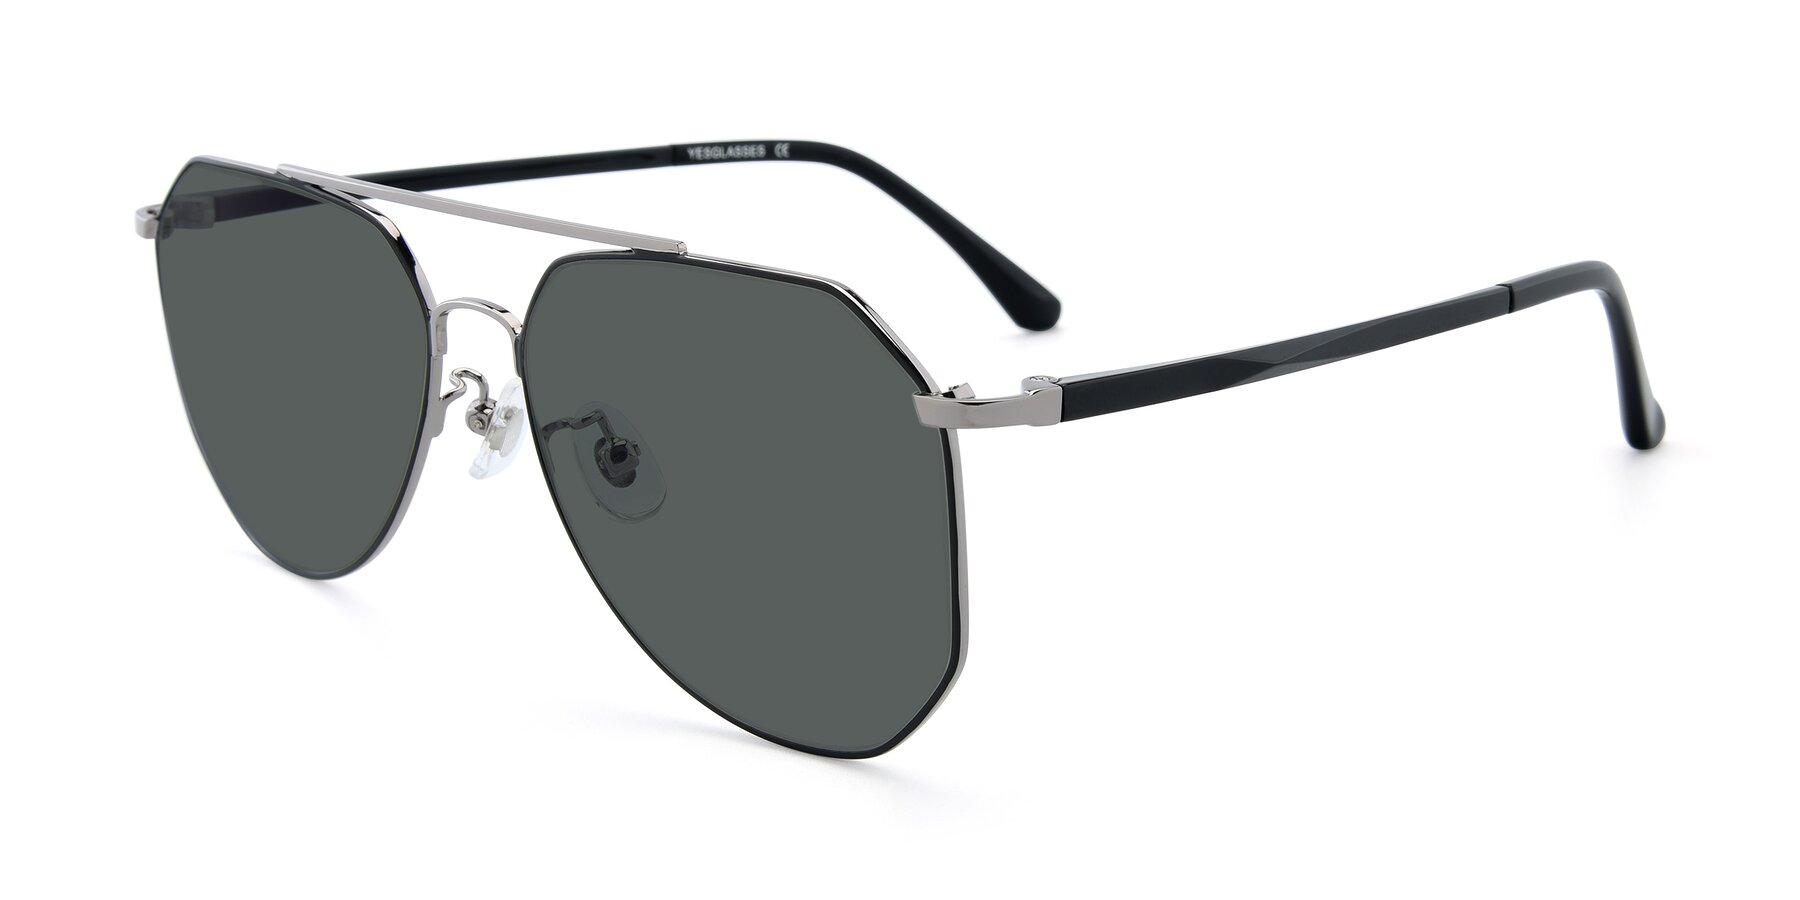 Angle of XC-8040 in Black/ Gun with Gray Polarized Lenses